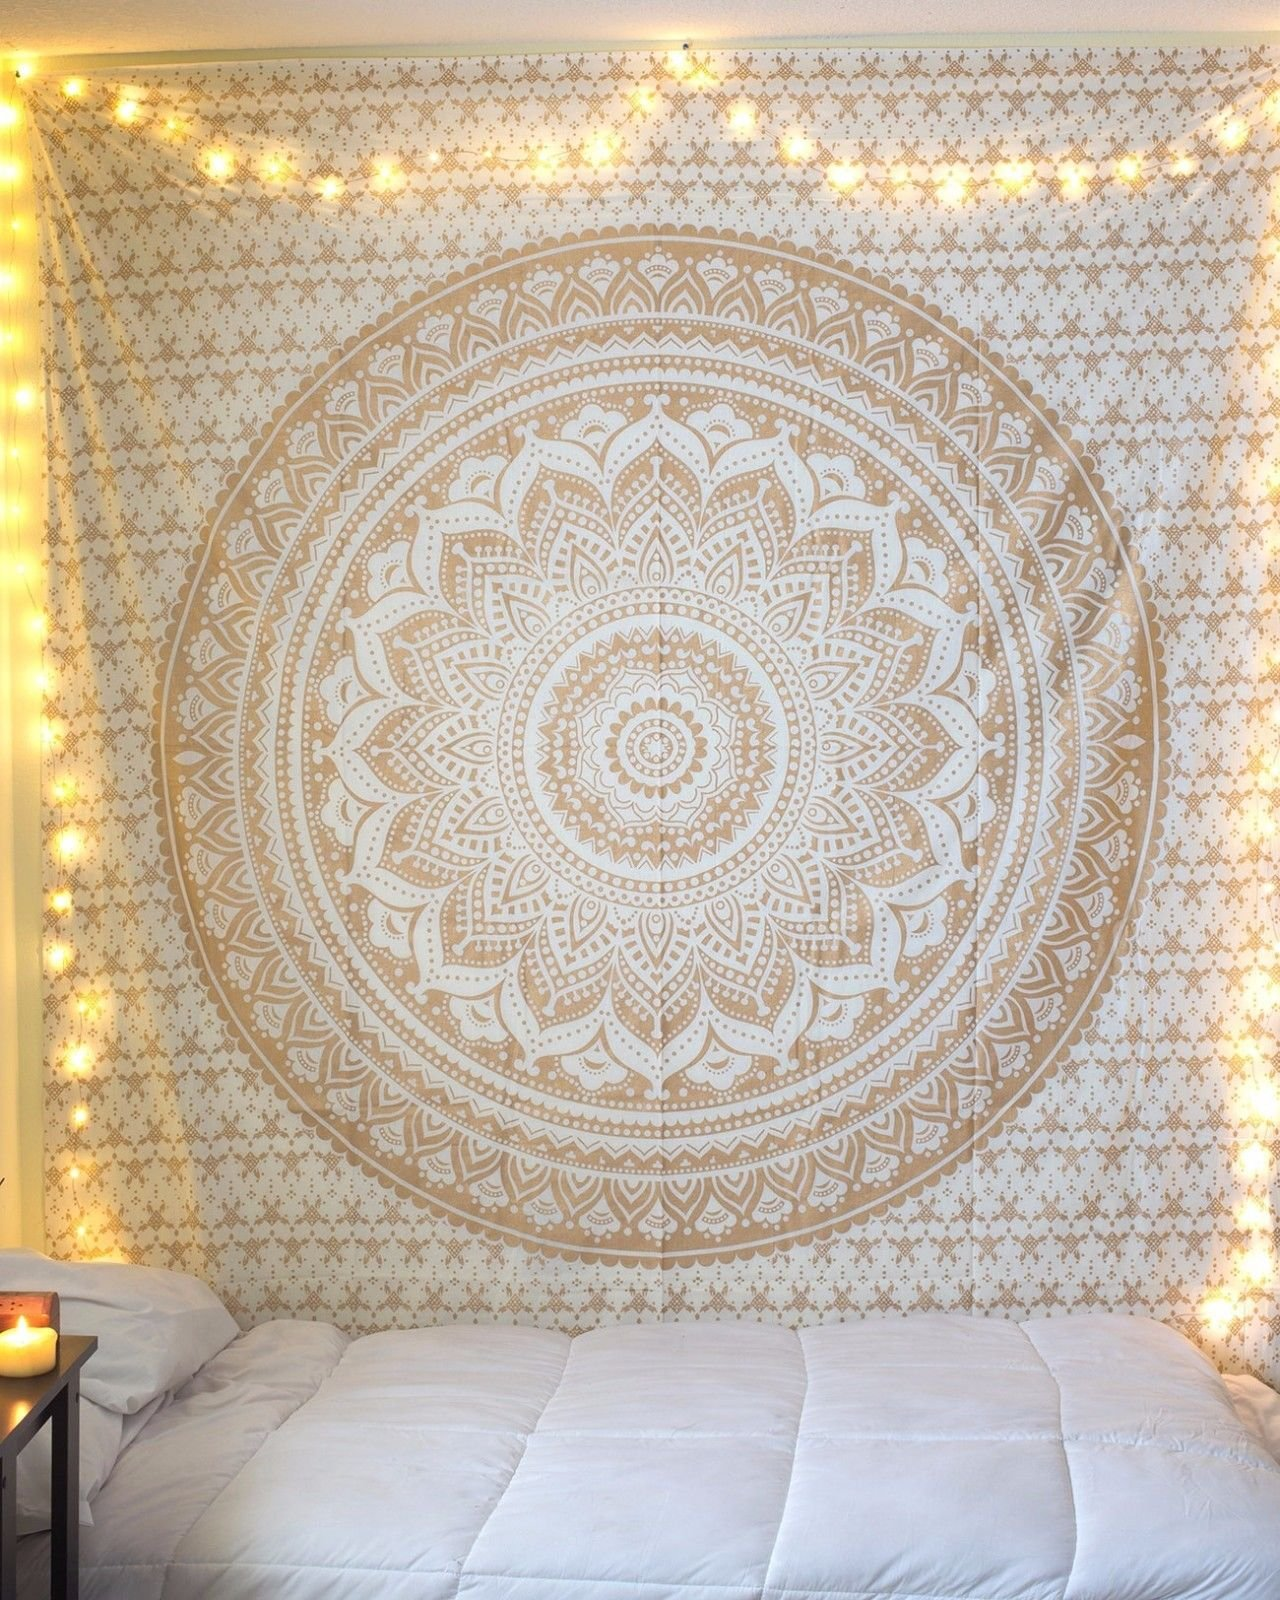 Golden Ombre Tapestry '' Gold Tapestry Ombre Bedding Mandala Tapestry Multi Color Indian Mandala Wall Art Hippie Wall Hanging (Gold, 85x55 Inch)